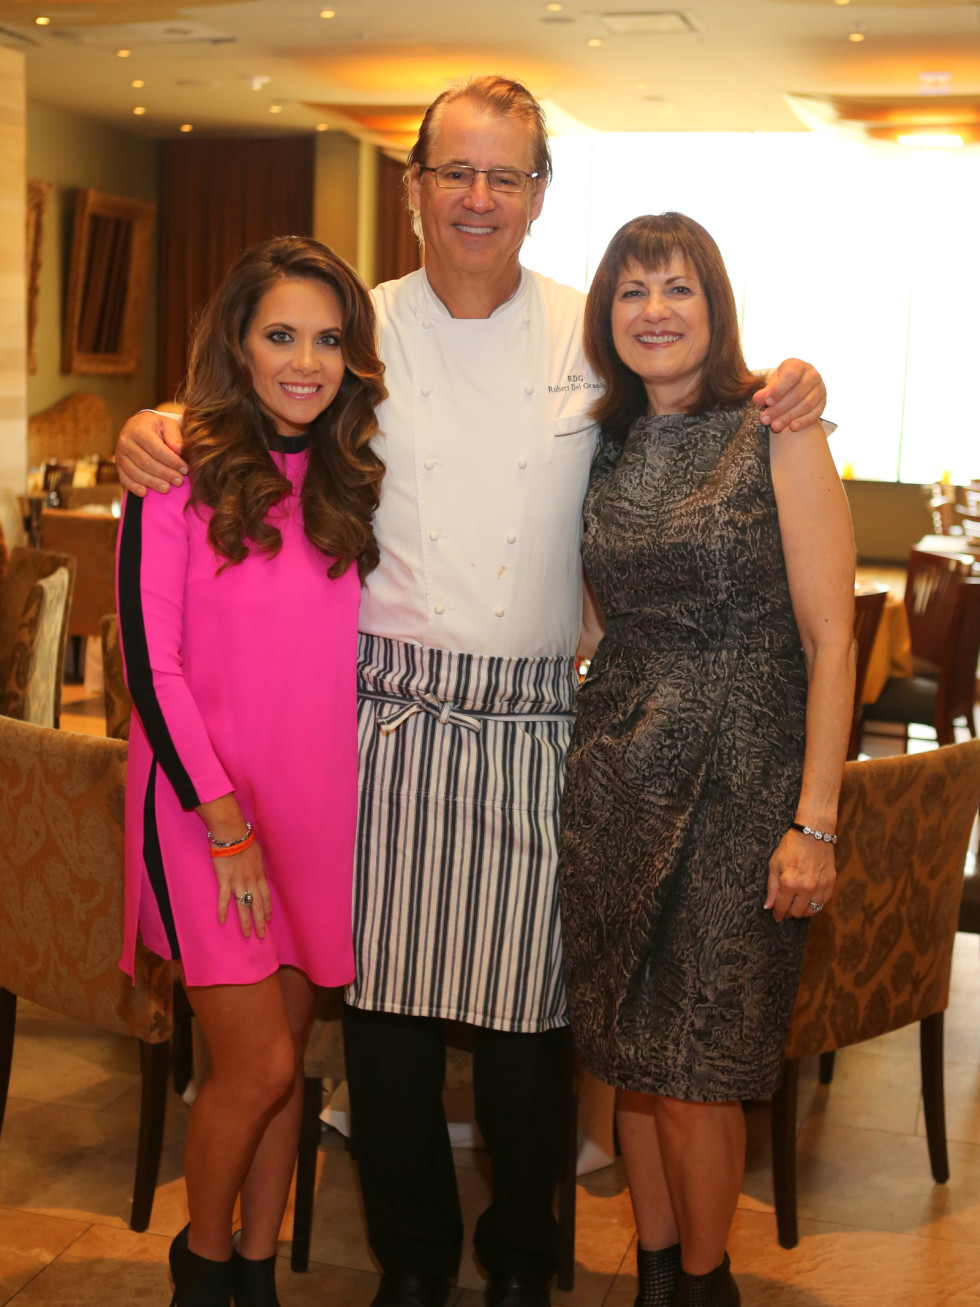 News, Shelby, Dec My Room luncheon, Oct. 2015 Joanna Marks, Robert Del Grande, Ellie Francisco